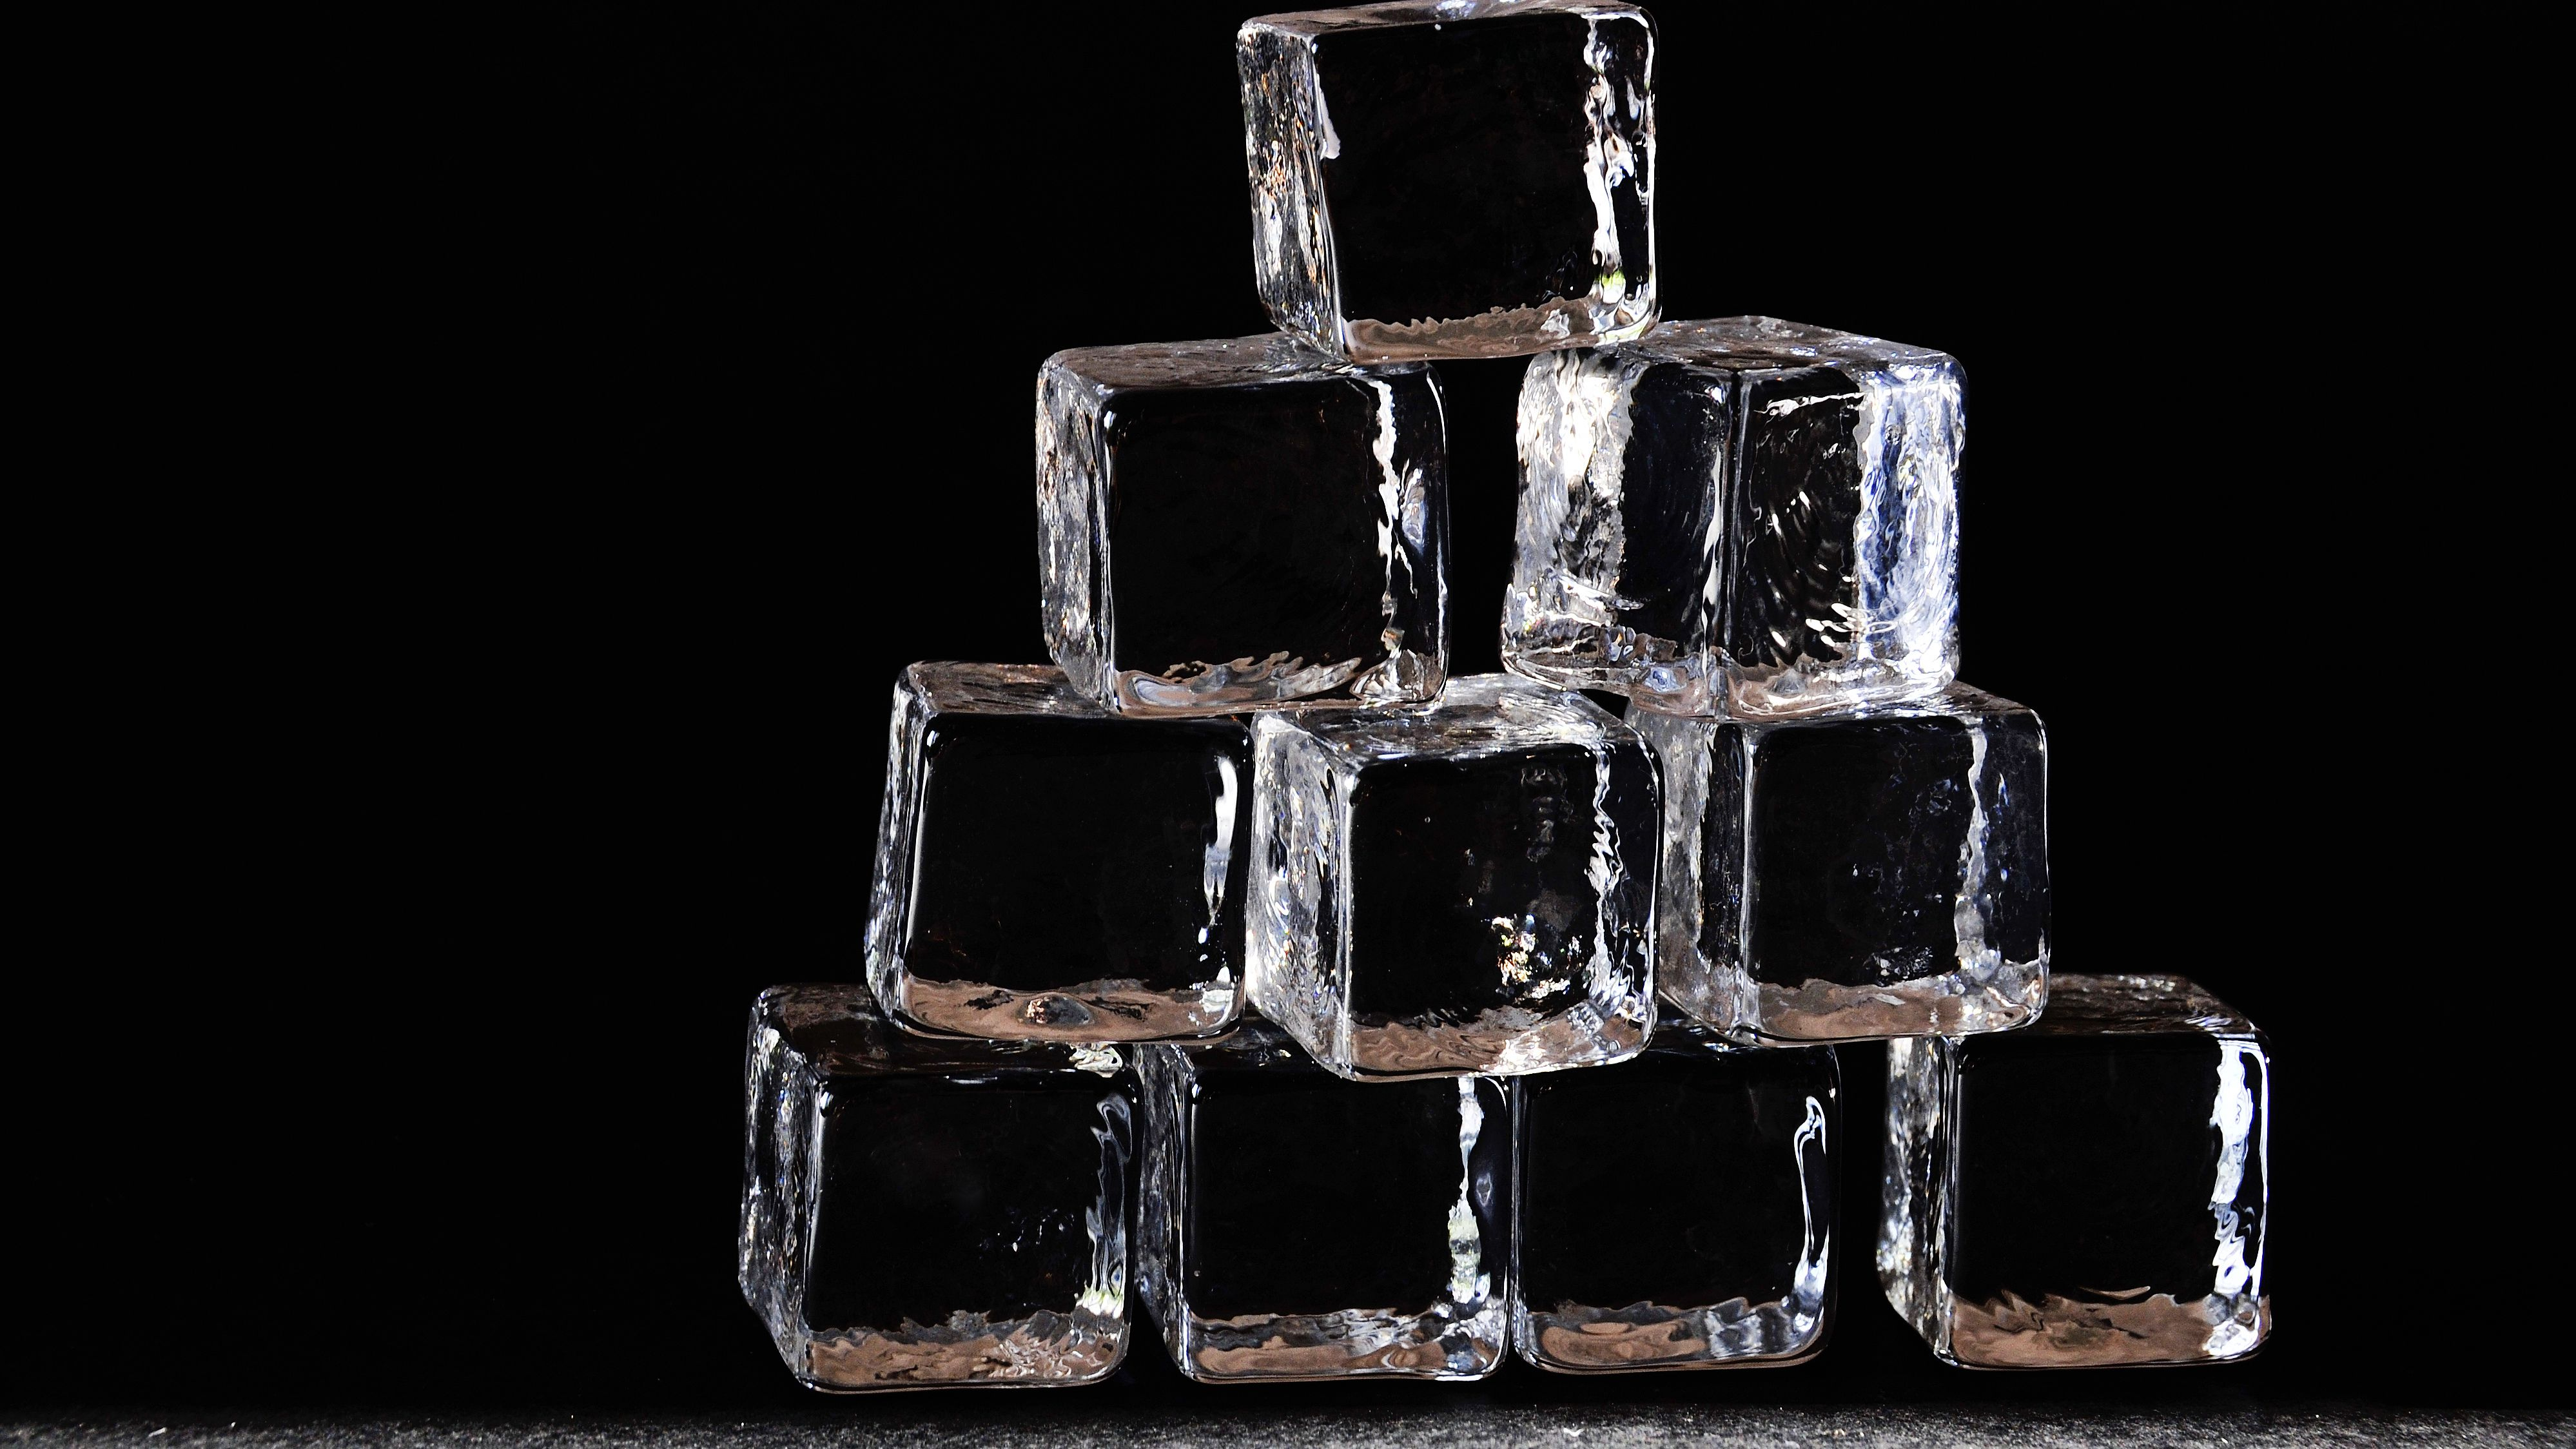 How To Make Crystal Clear Ice Cubes